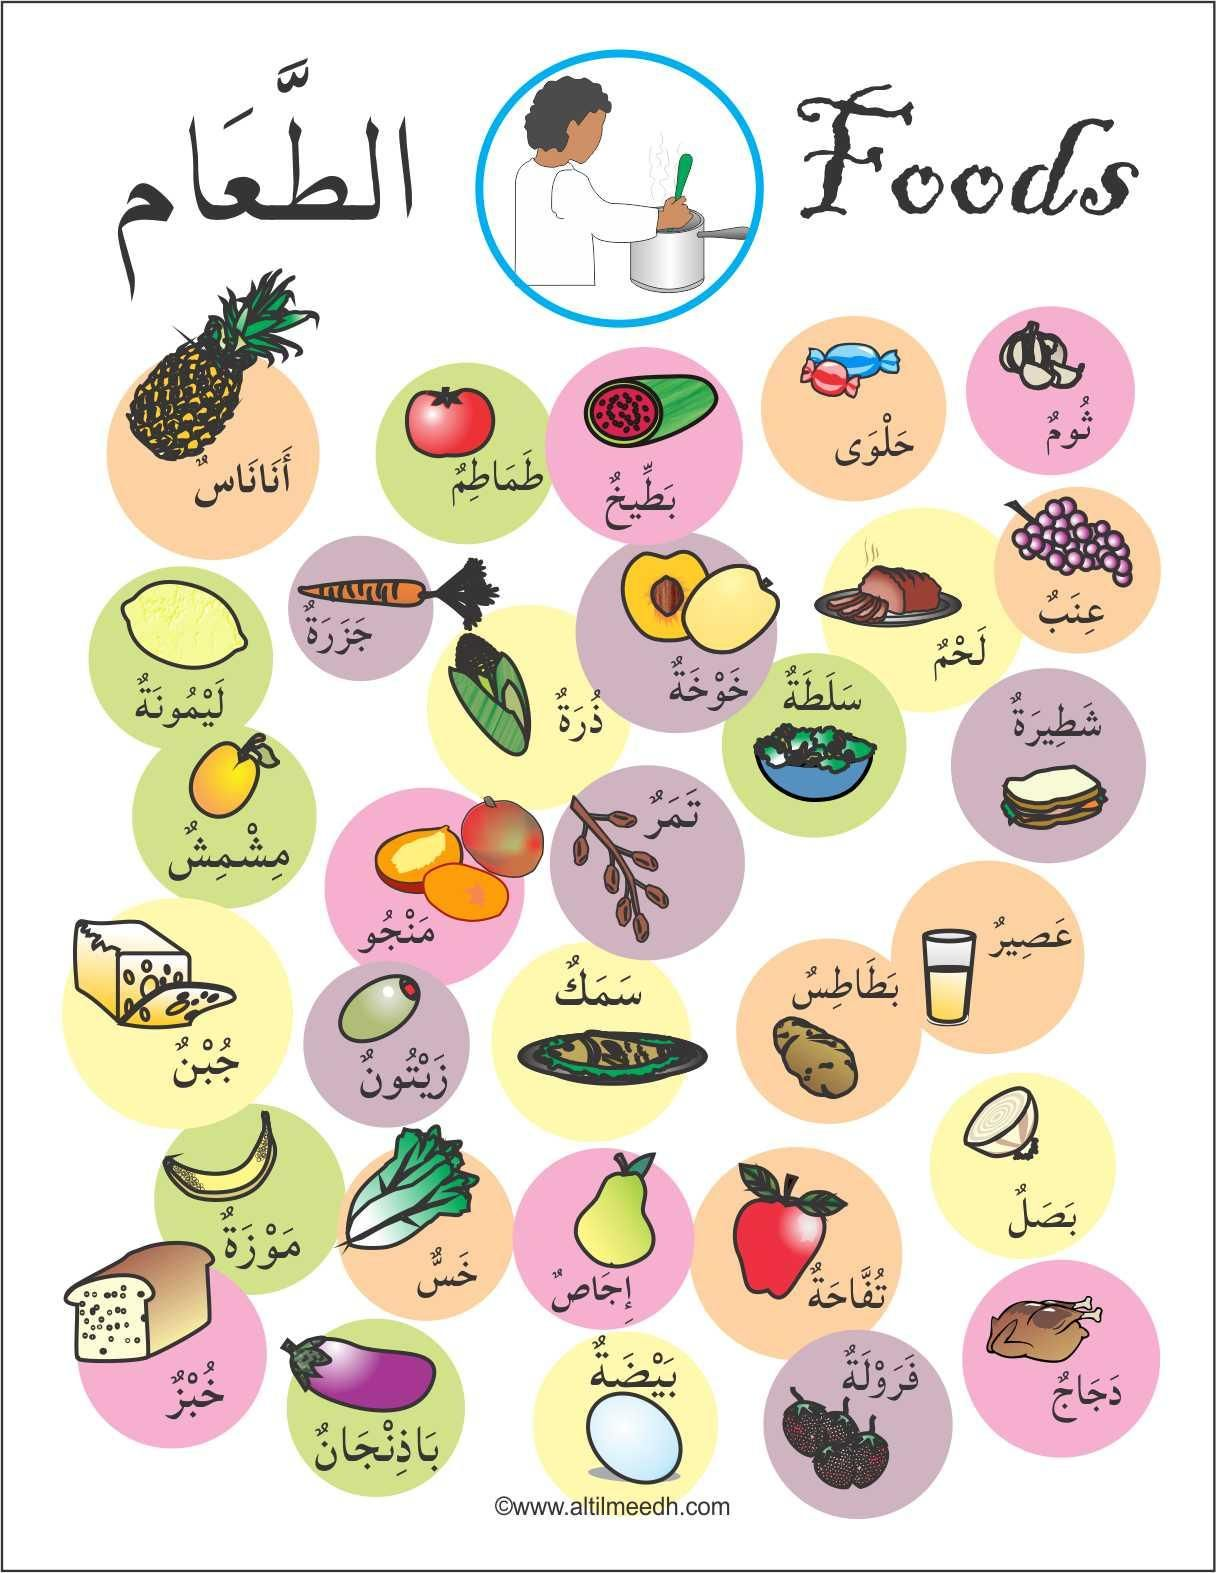 Abicplayground Foods Poster With Arabic Text By